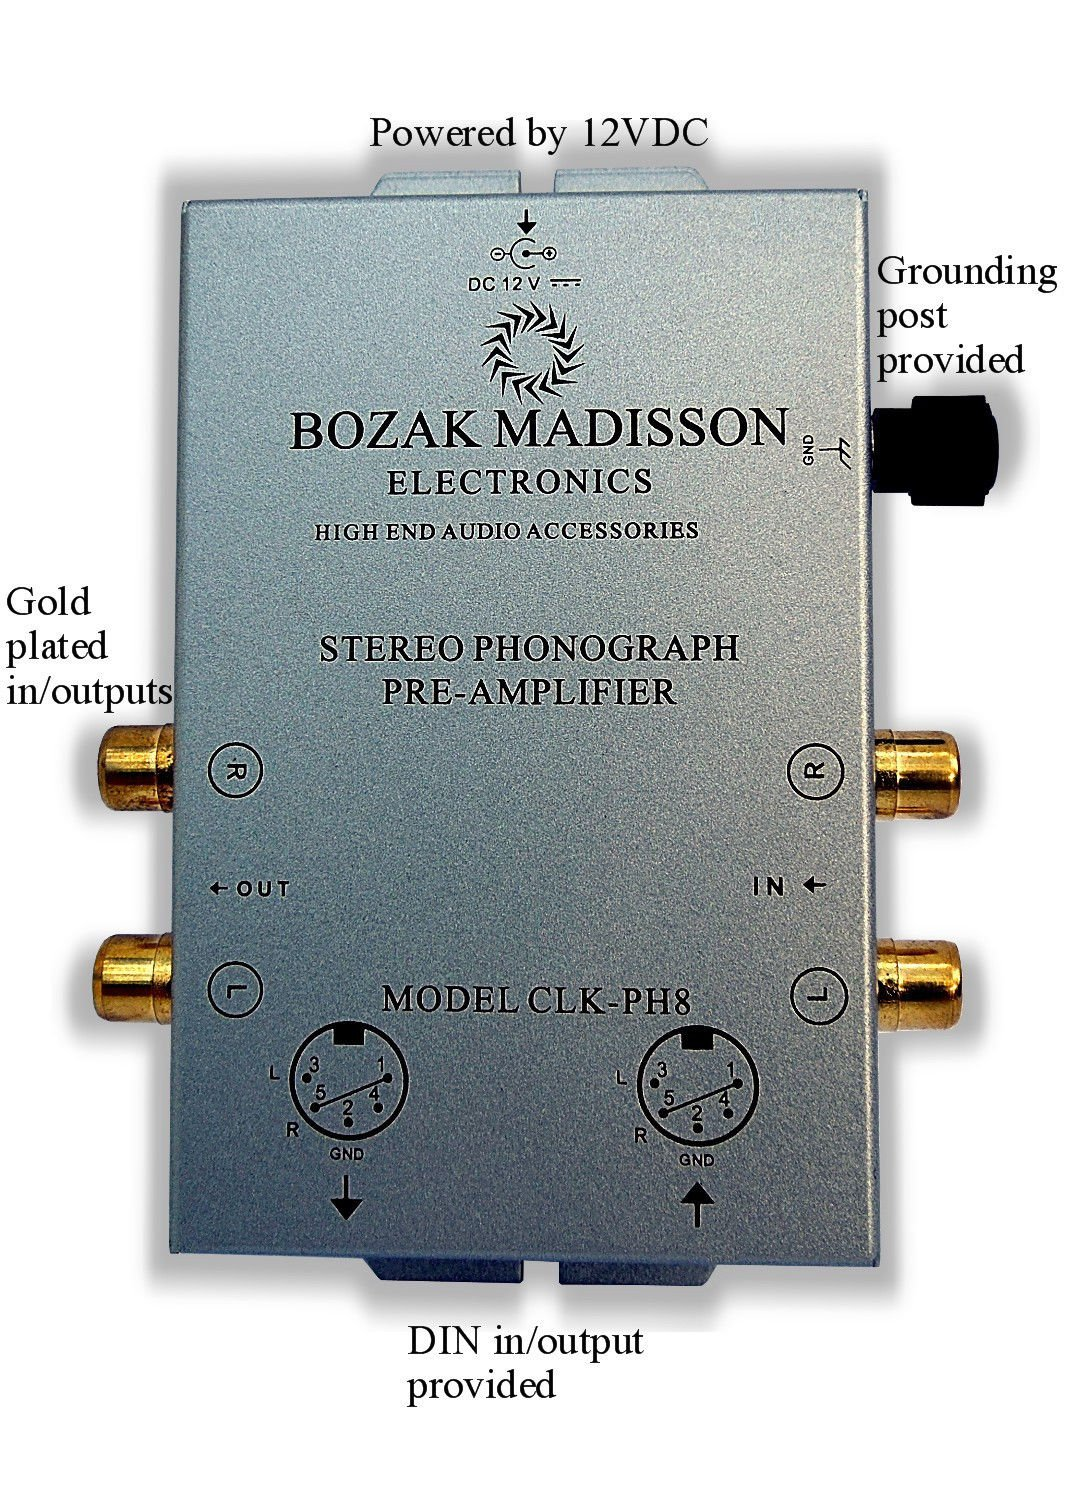 Bozak Madisson CLK-PH8 Phono Preamp Preamplifier Turntable Amplifier with DIN in/out by BOZAK MADISSON